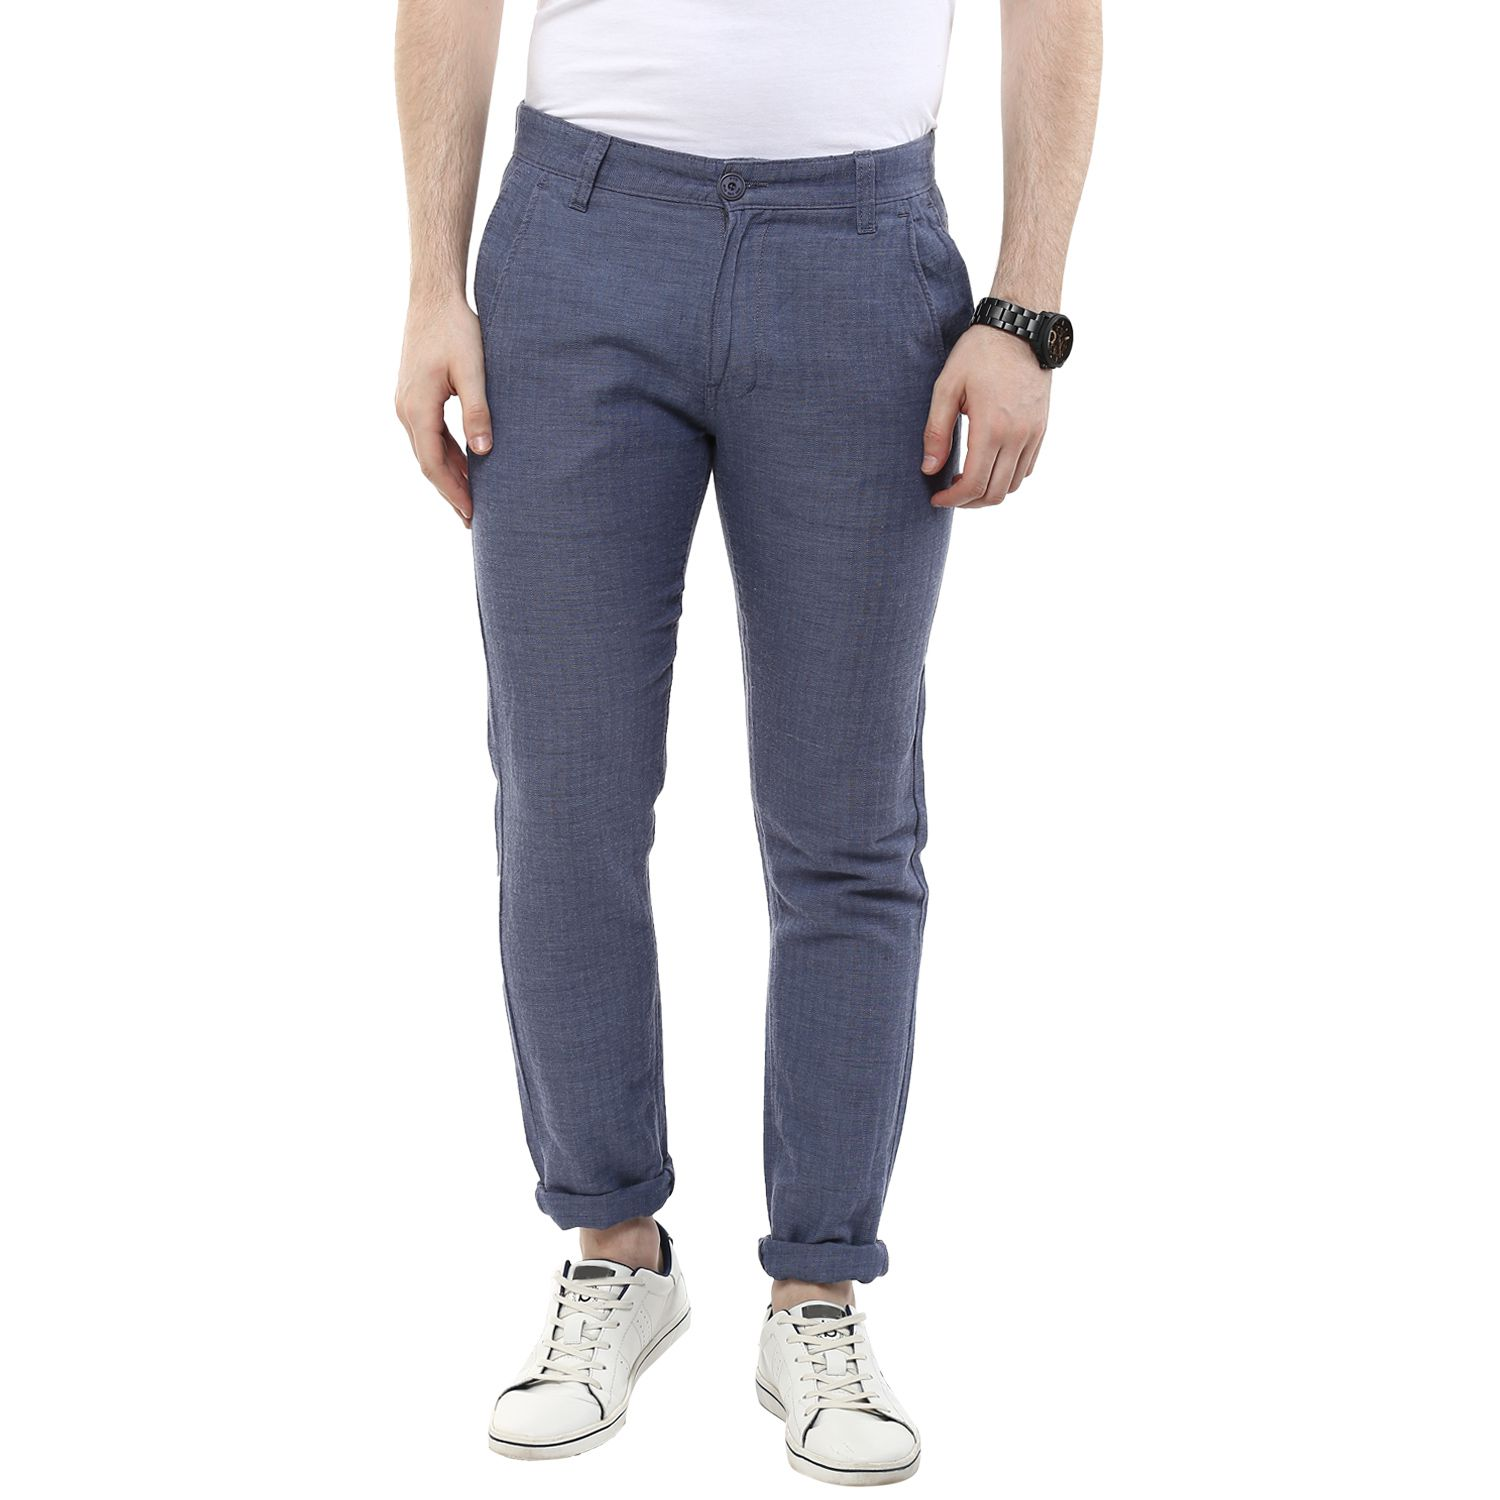 Wear Your Mind Grey Regular -Fit Flat Chinos